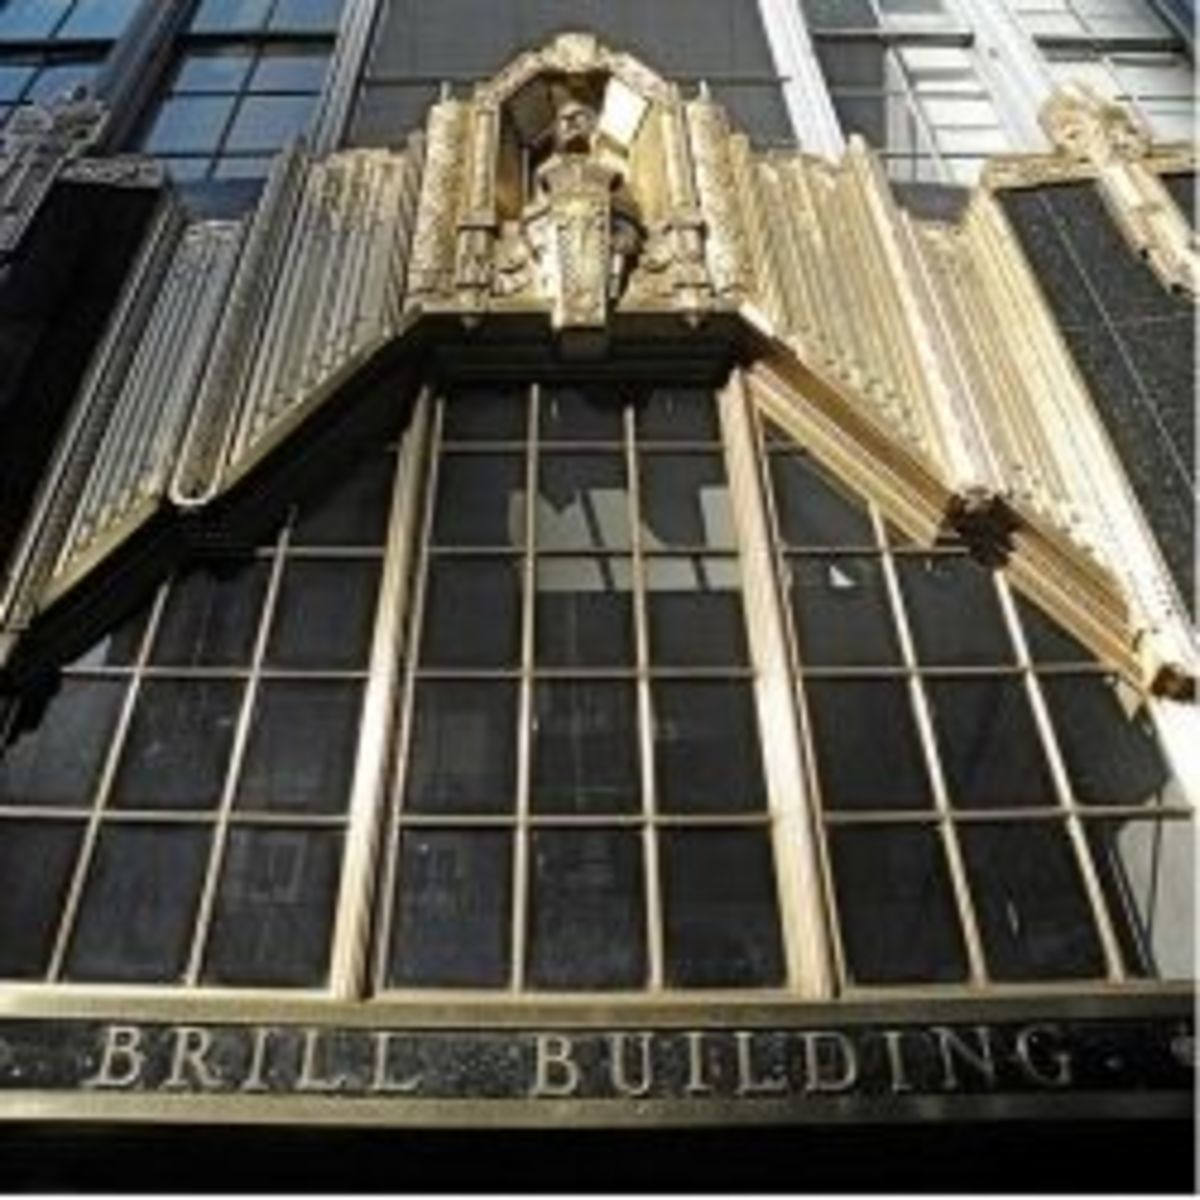 The Brill Building - Pop Song Paradise